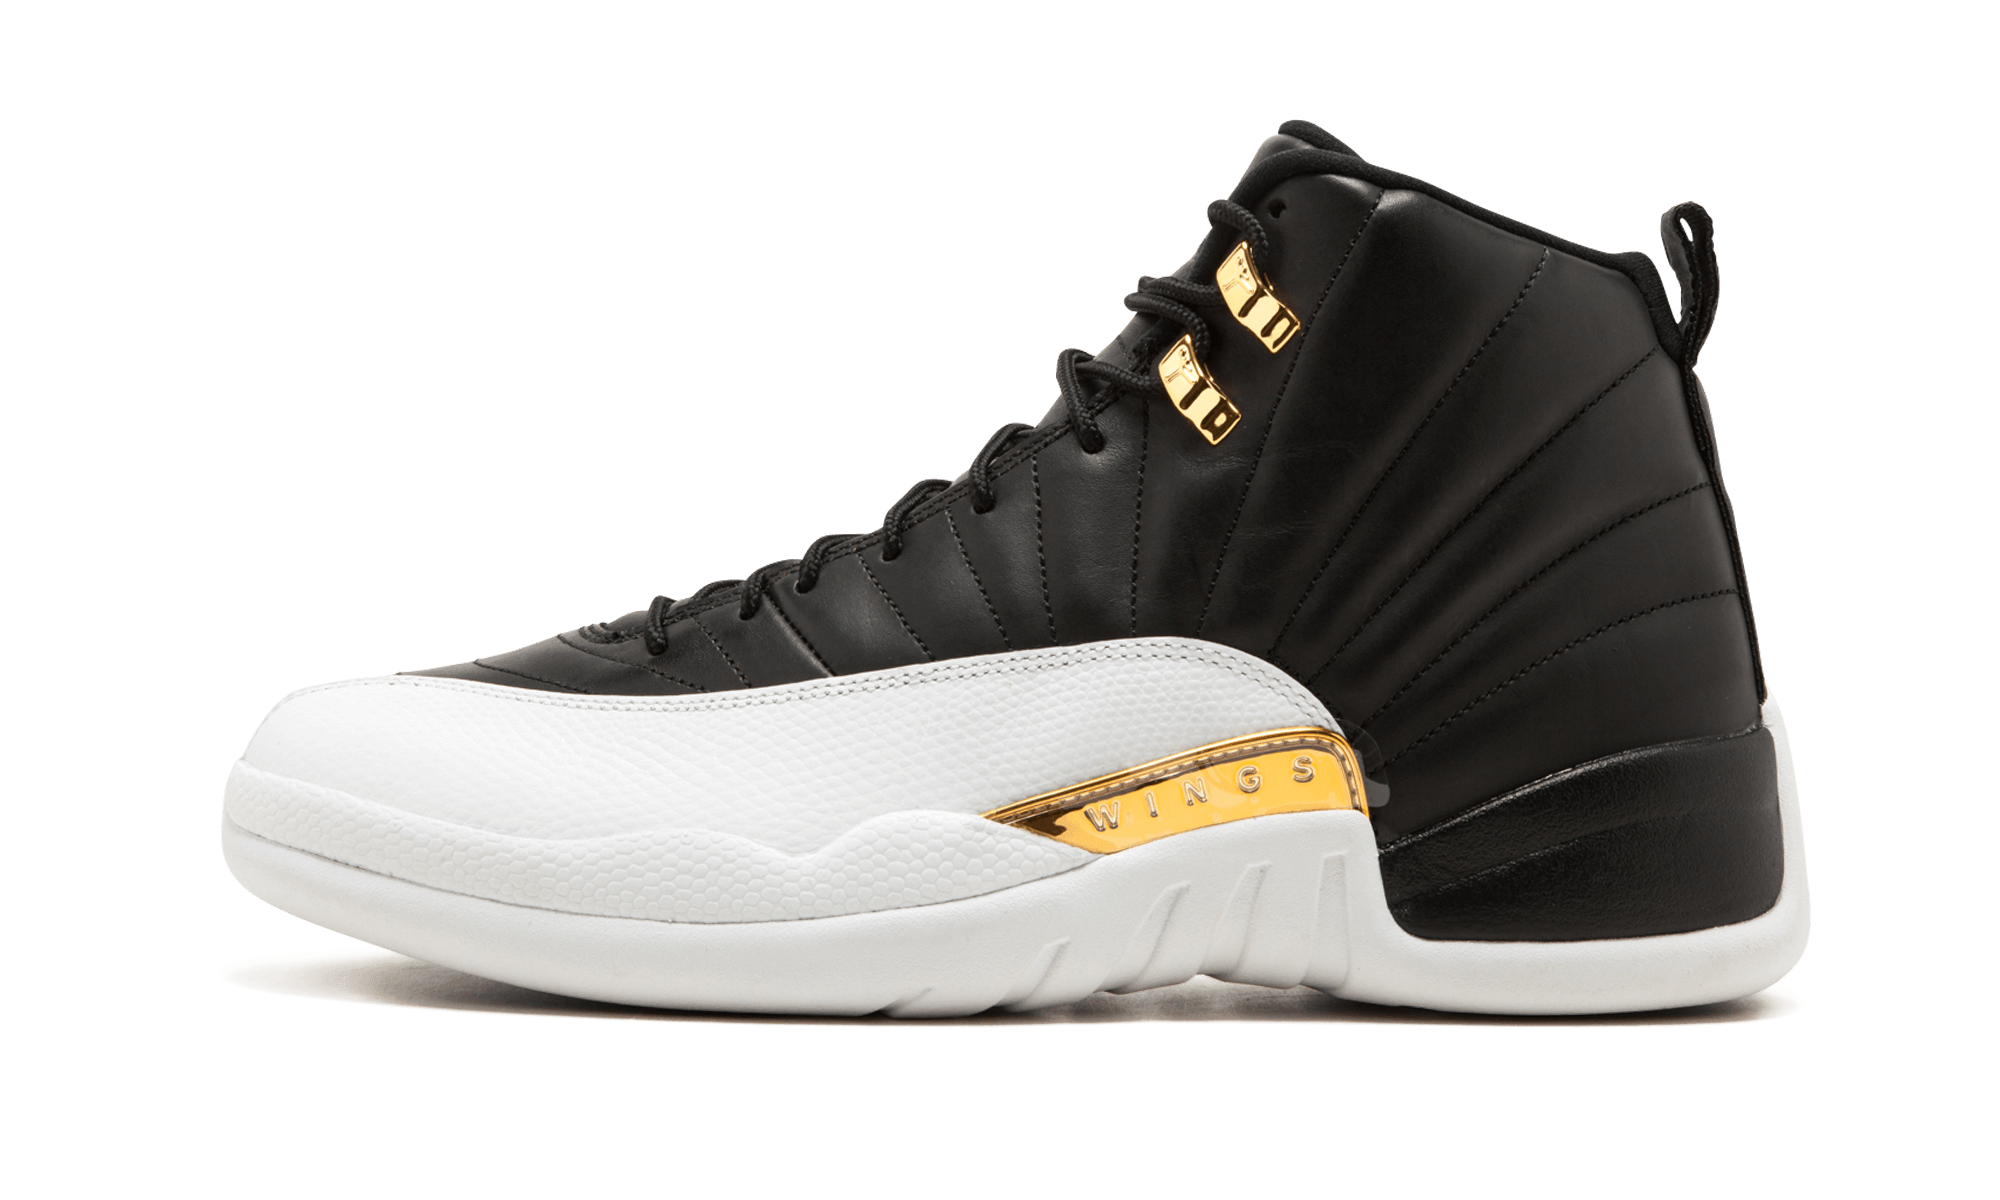 get cheap bf199 6ad31 ... 1 melo available now 36d01 abf27 clearance limited to only 12000  individually numbered pairs worldwide this special edition air jordan 12  from ...